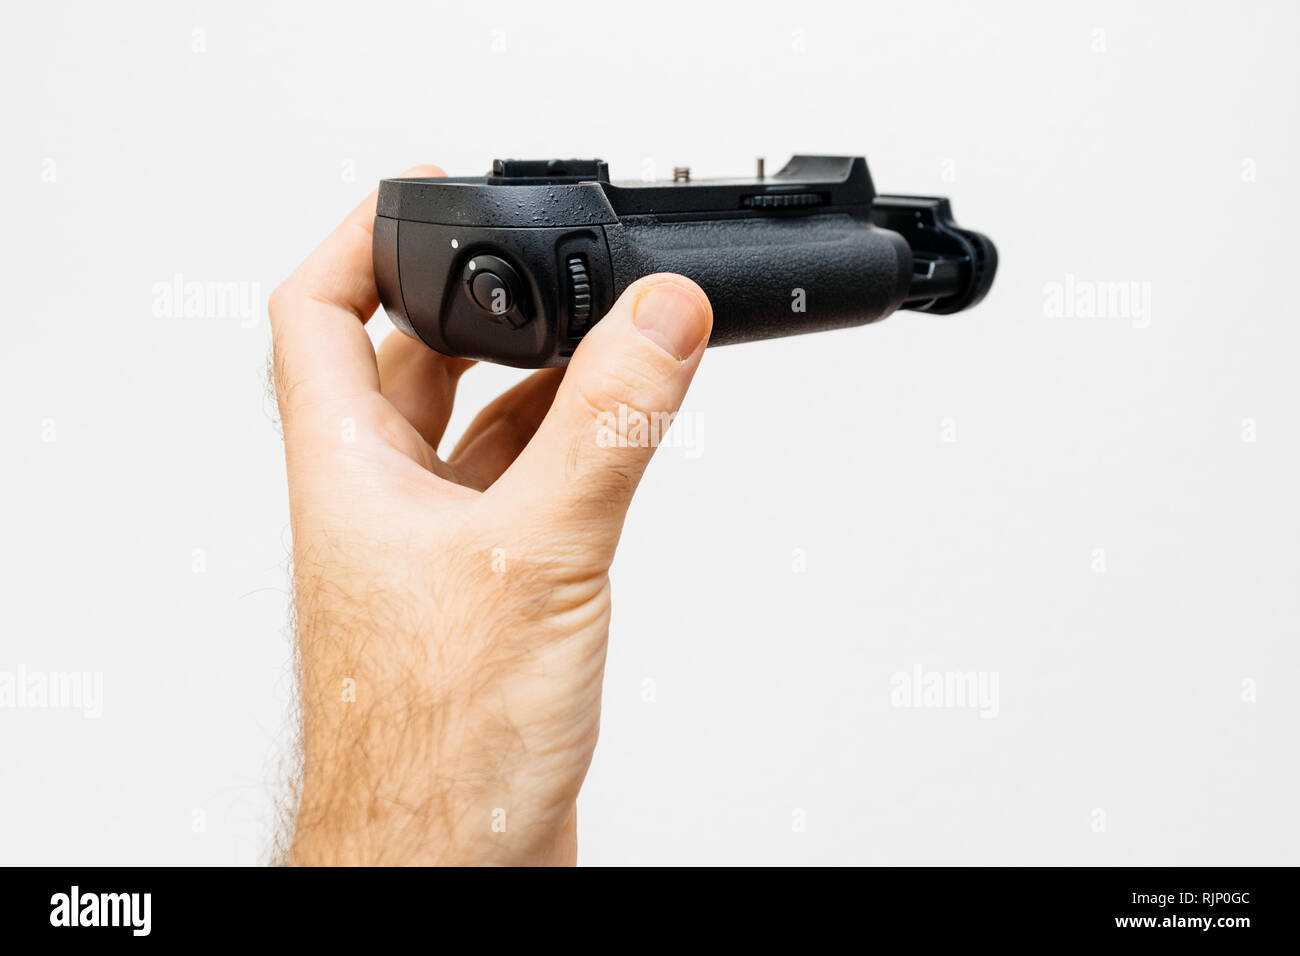 Photographer hand holding against white background a new modern battery camera grip for his new camera full frame DSLR and mirrorless camera - Stock Image